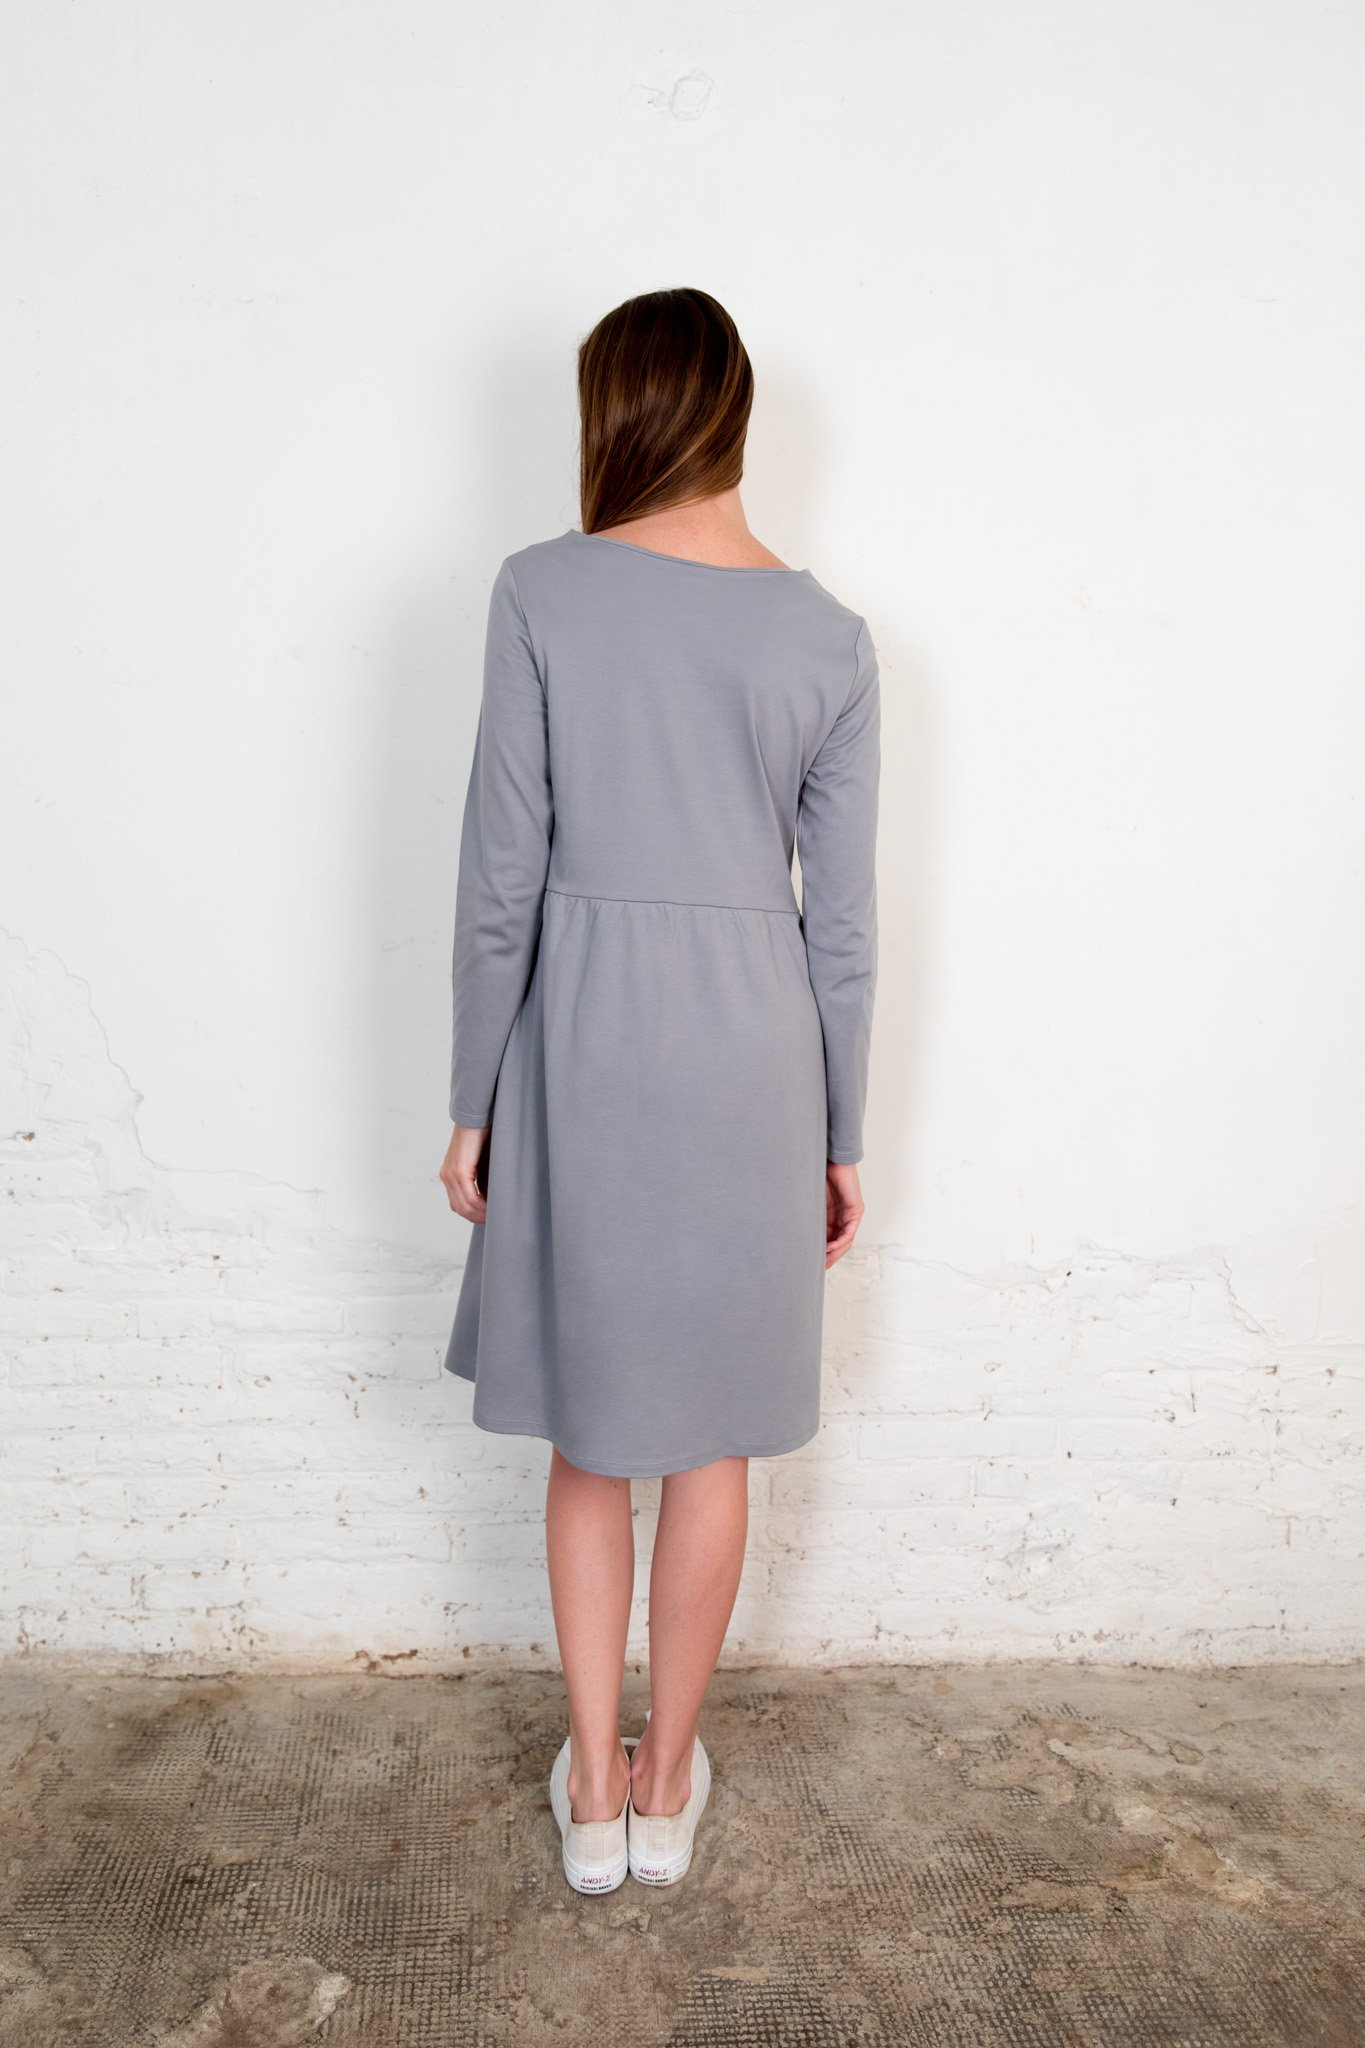 Annor dress gray from The Nordic Leaves